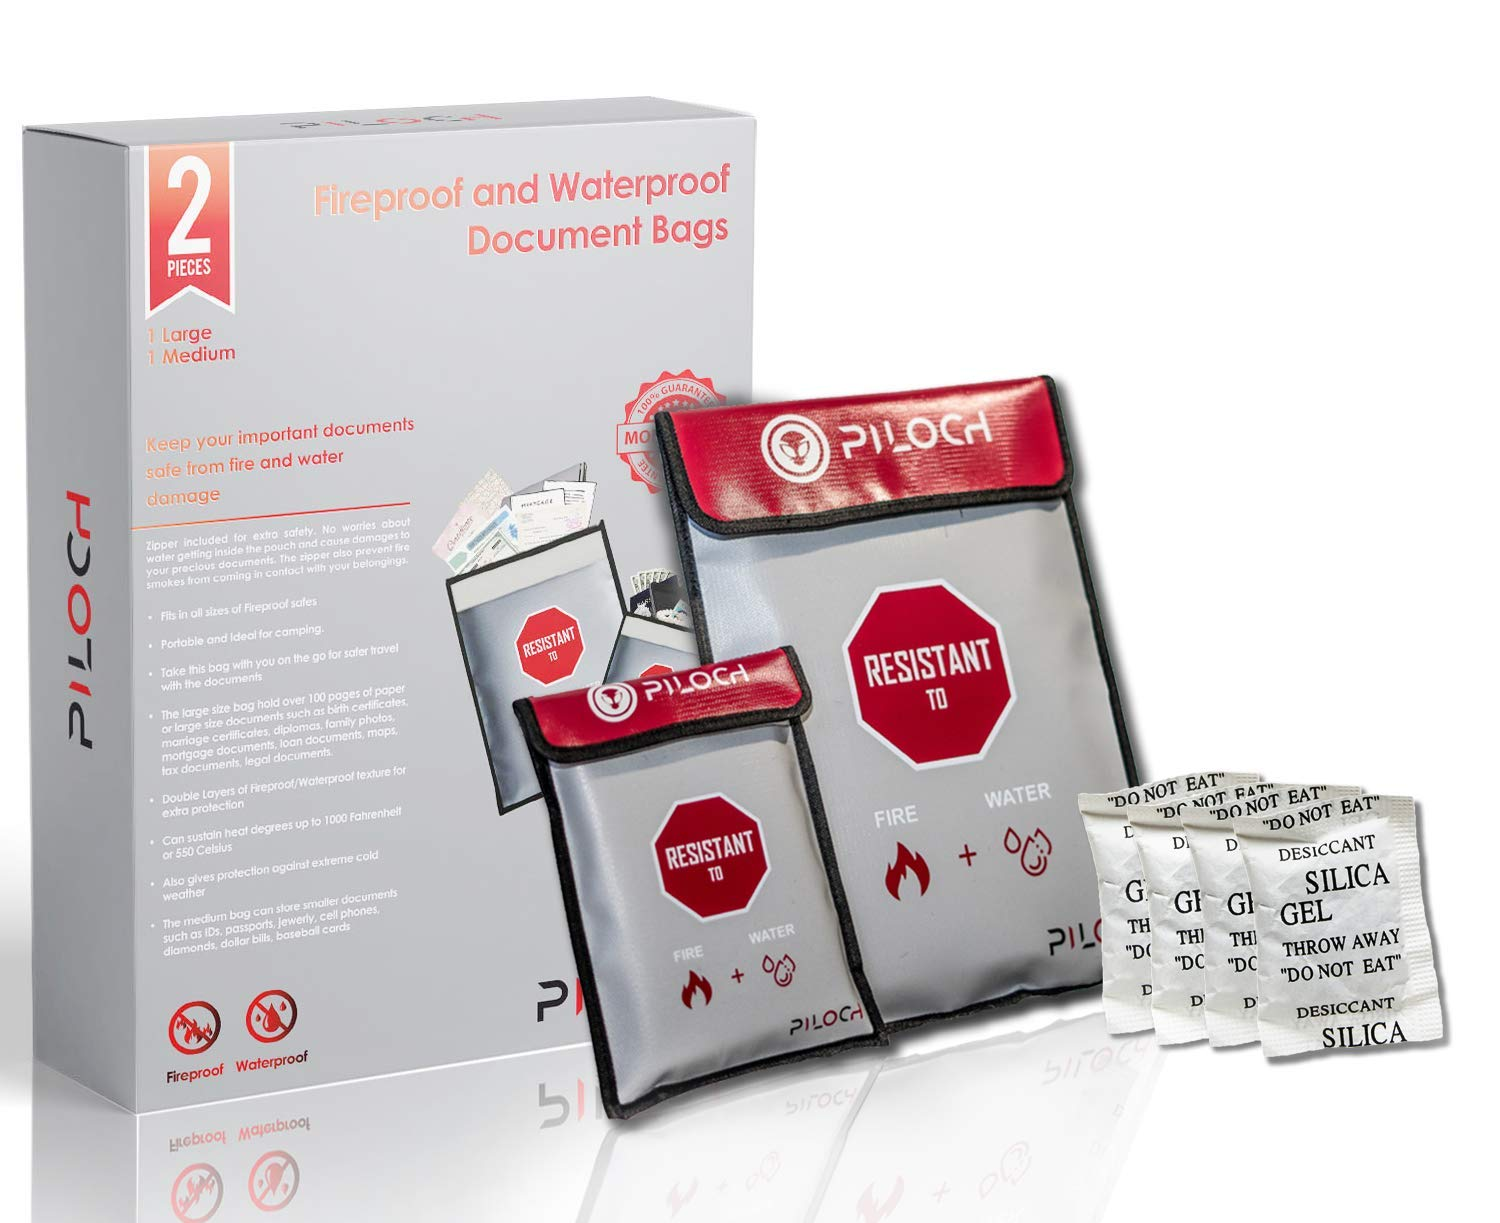 "Fireproof Document Bags|Waterproof, Comes with 1 Large (15""x11"") + 1 Medium (9""x7"") Fireproof Document Bag